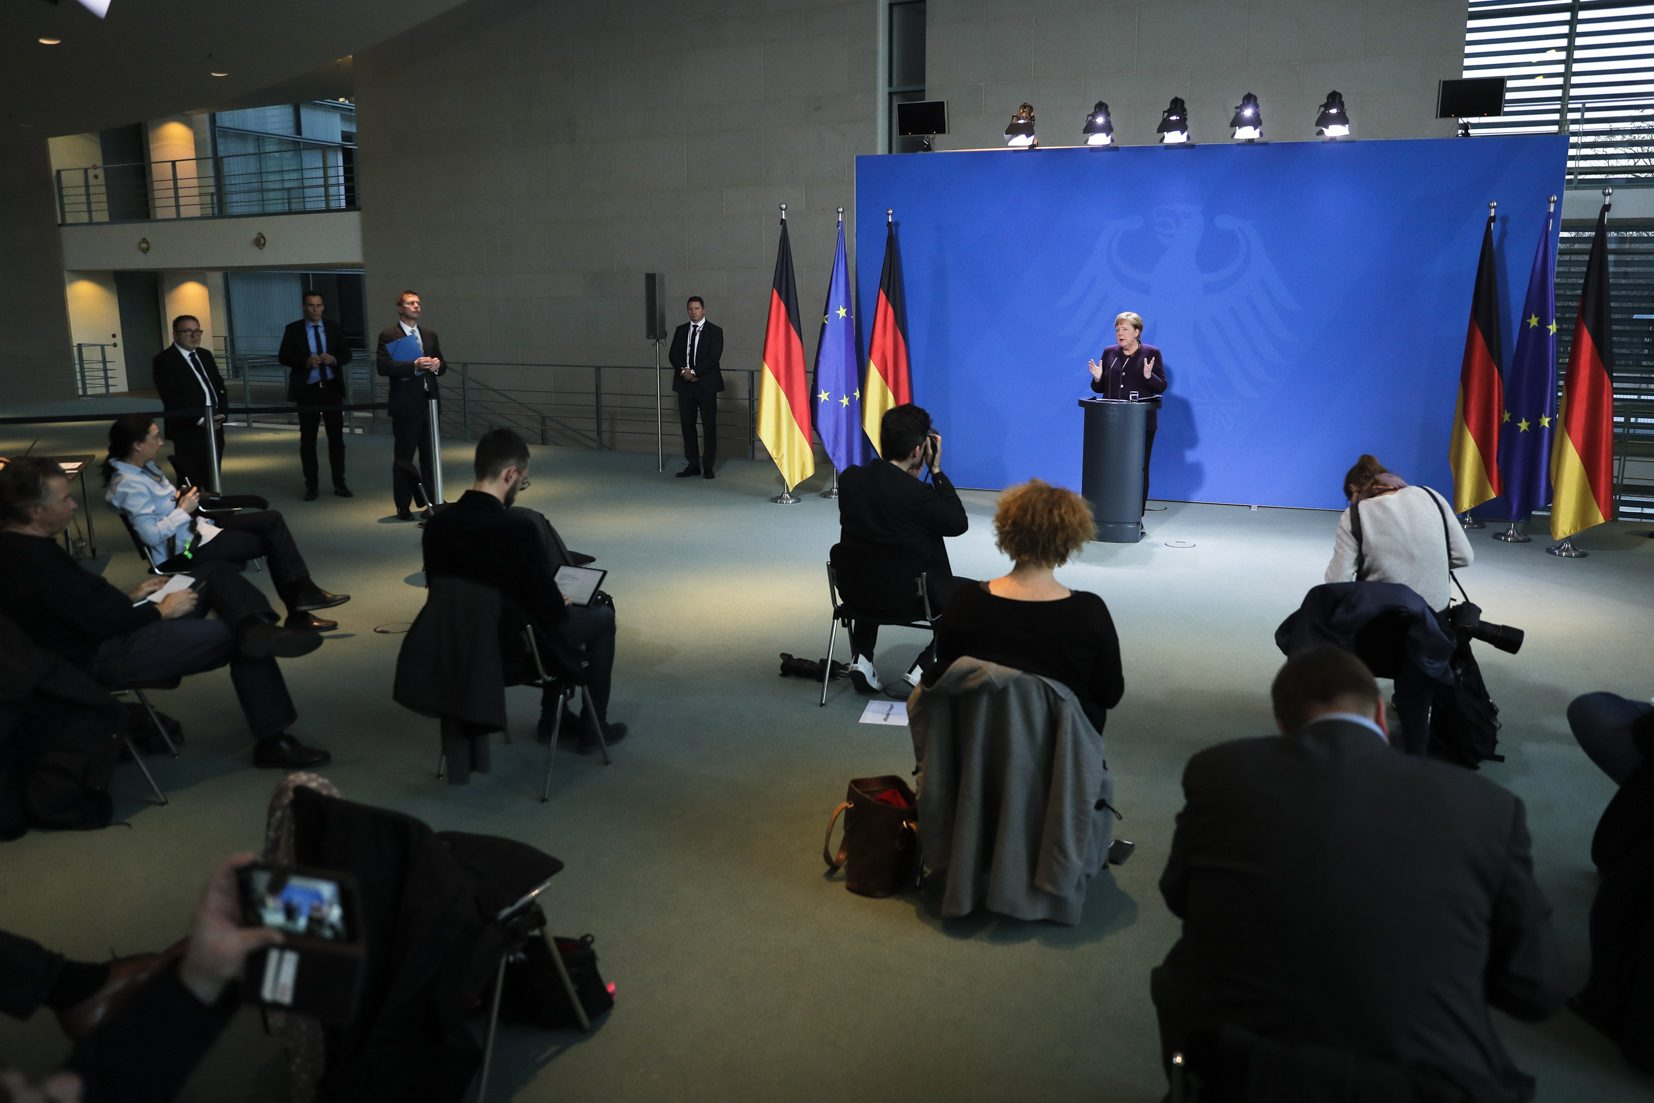 German Chancellor Angela Merkel makes a press statement, where the limited number of journalists allowed in were placed at a distance to each other, on the spread of the coronavirus COVID-19 at the Chancellery, in Berlin on March 16, 2020. (Photo by Markus Schreiber / AFP)